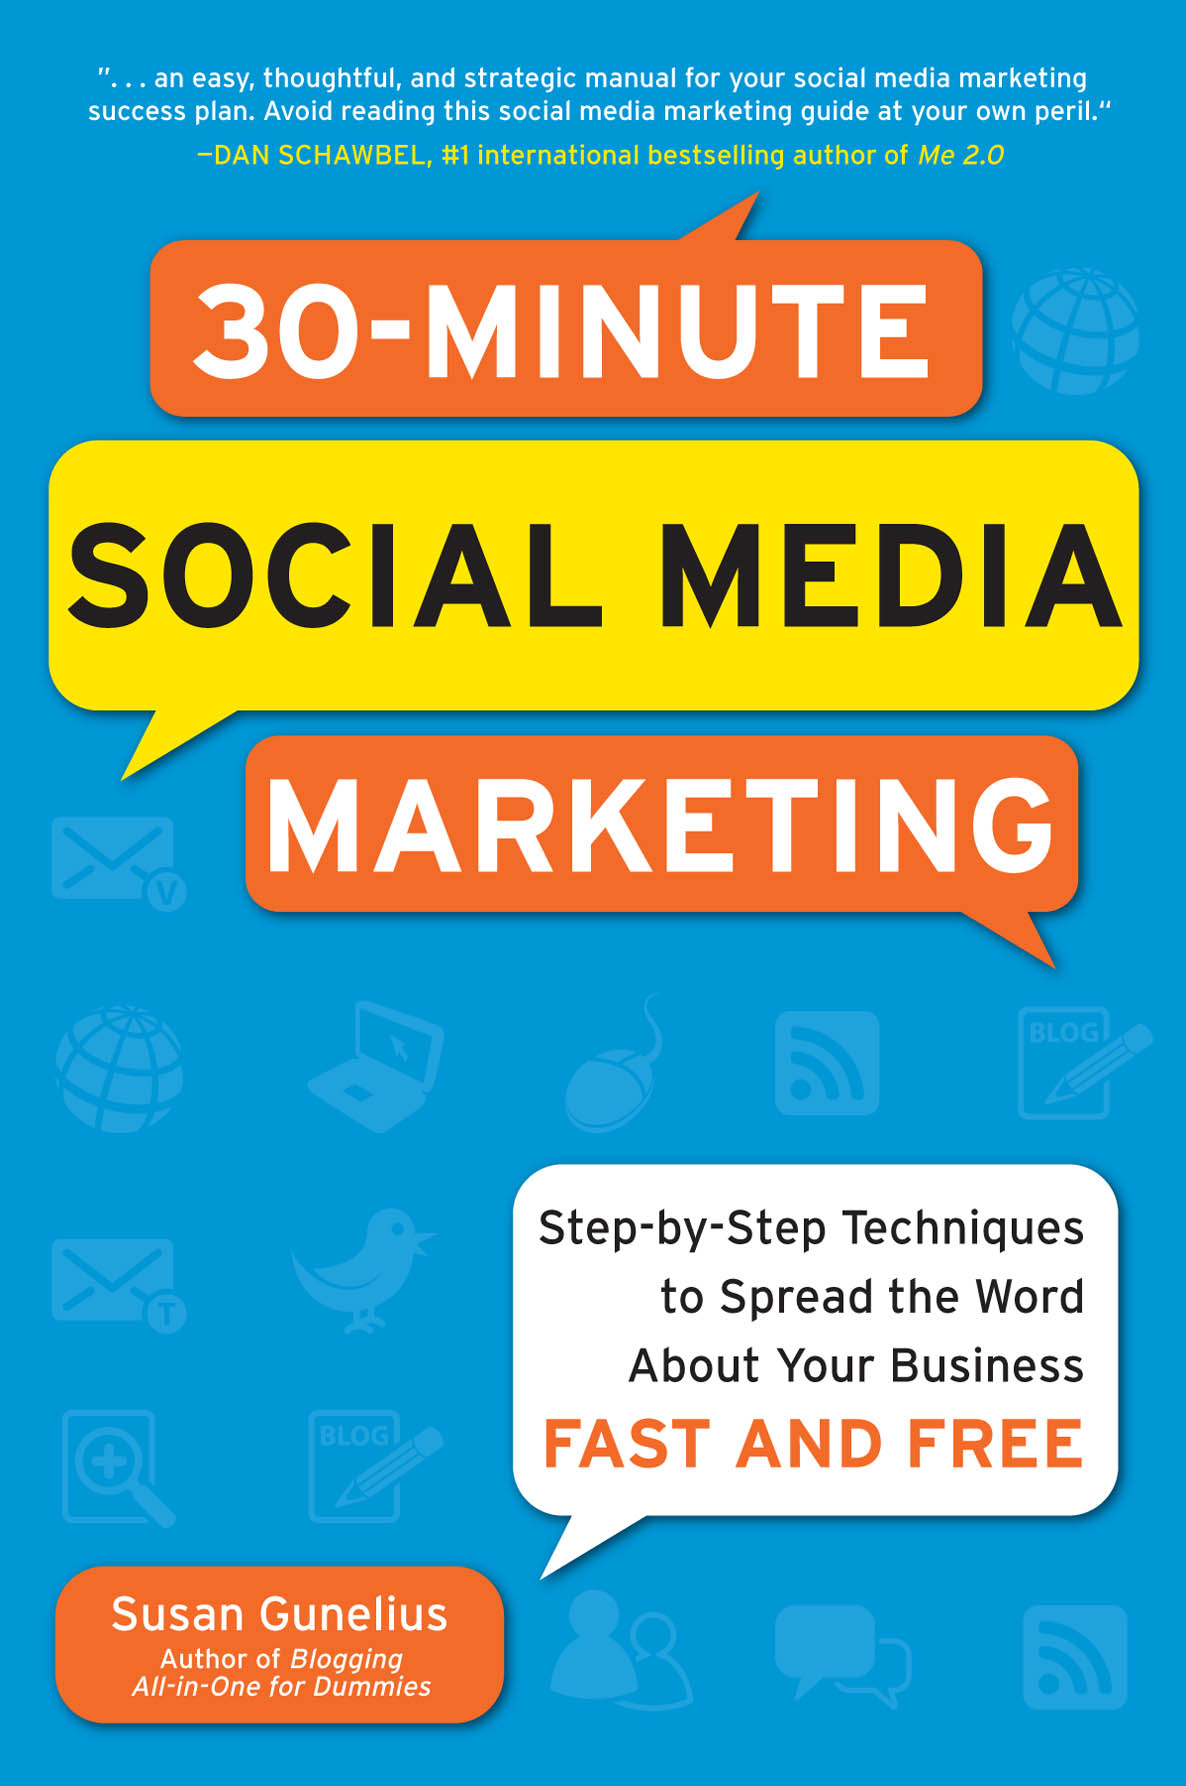 Download Ebook 30-Minute Social Media Marketing: Step-by-step Techniques to Spread the Word About Your Business by Susan Gunelius Pdf